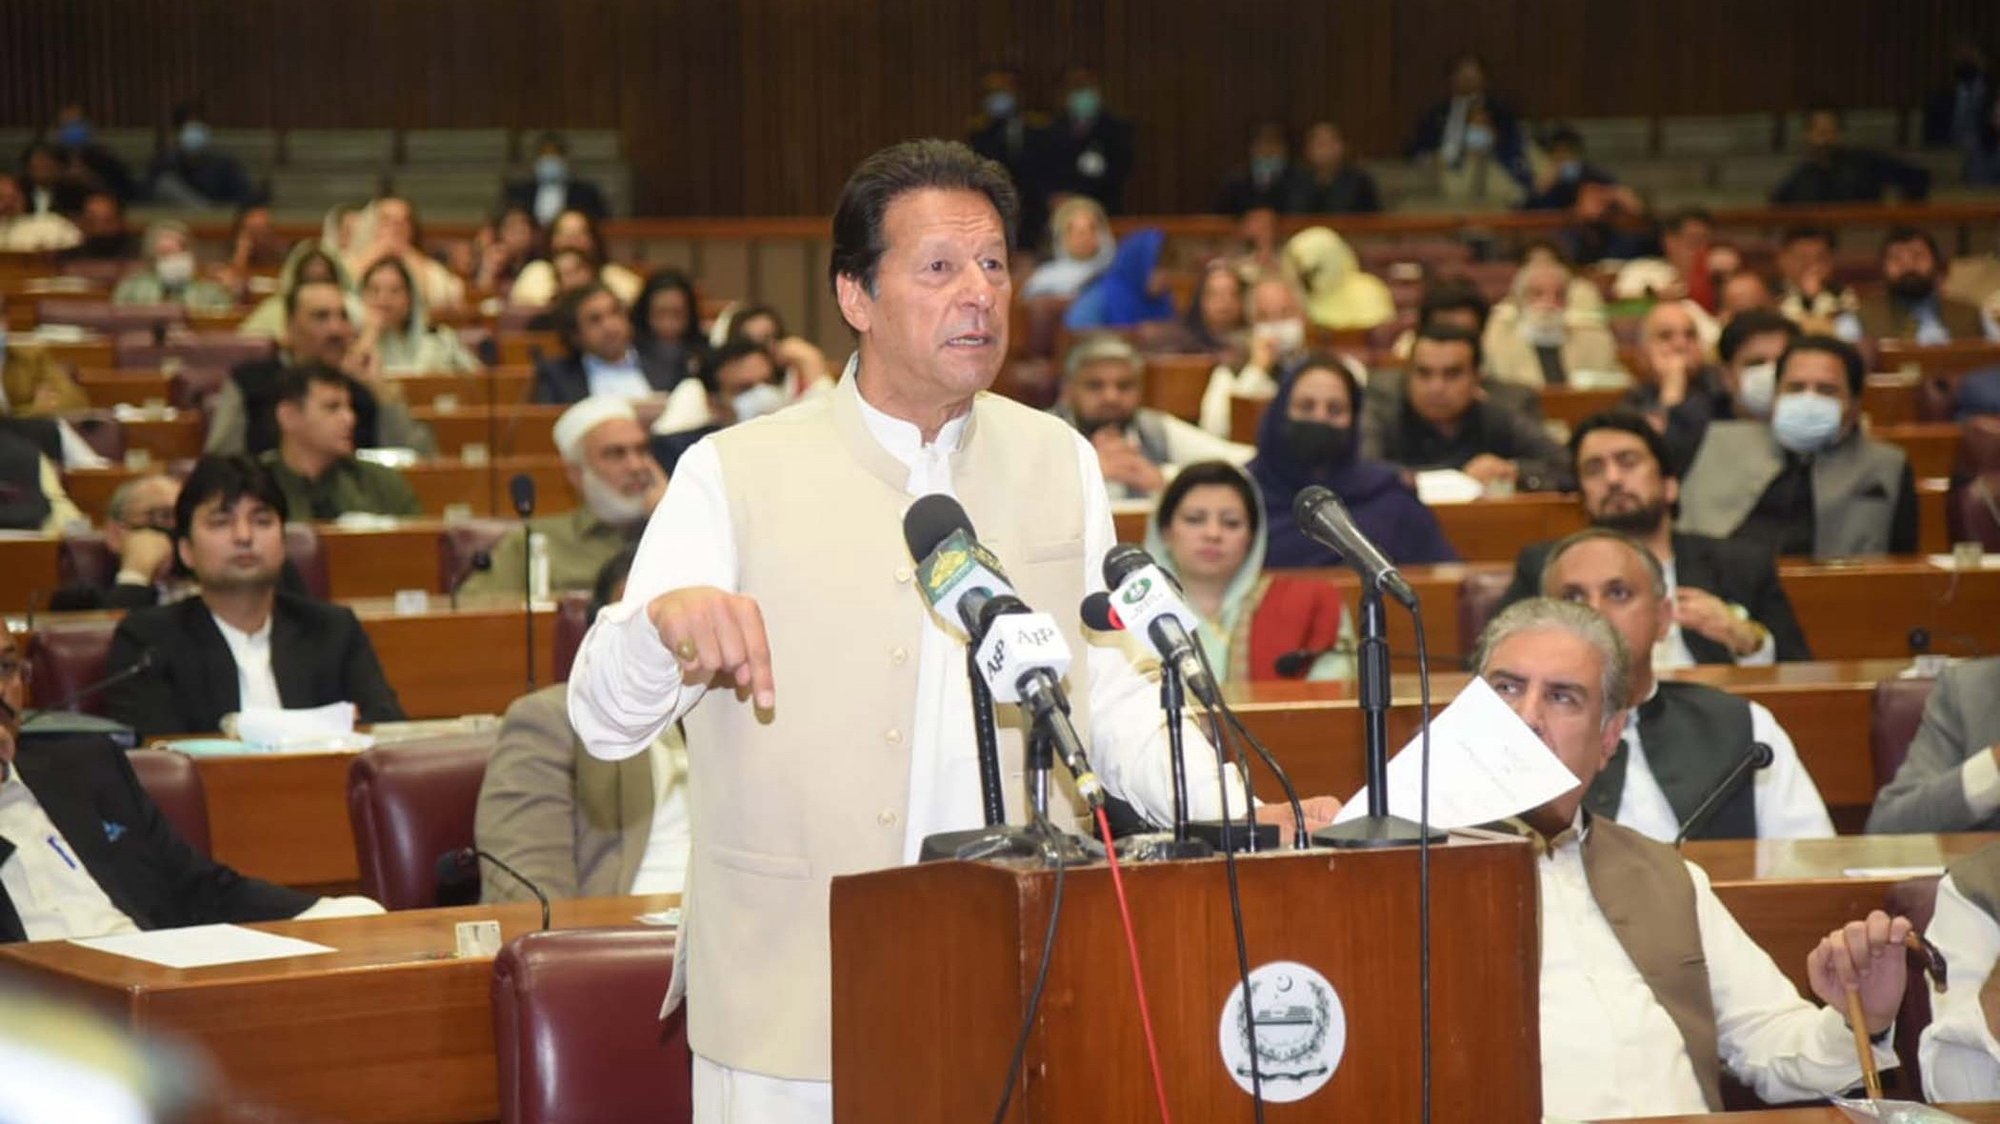 epa09056536 A handout photo made available by the Press Information Department PID shows Prime Minister Imran Khan addressing National Assembly after getting vote of confidence session in Islamabad, Pakistan, 06 March 2021. Pakistan Prime Minister Imran Khan won a vote of confidence in the lower of parliament on 06 March, in a session boycotted by the opposition. Imran Khan, who came to power in mid-2018, secured 178 votes, six more than needed to win the confidence of the 342-member house, according to National Assembly speaker Asad Qaiser.  EPA/PRESS INFORMATION DEPARTMENT HANDOUT  HANDOUT EDITORIAL USE ONLY/NO SALES